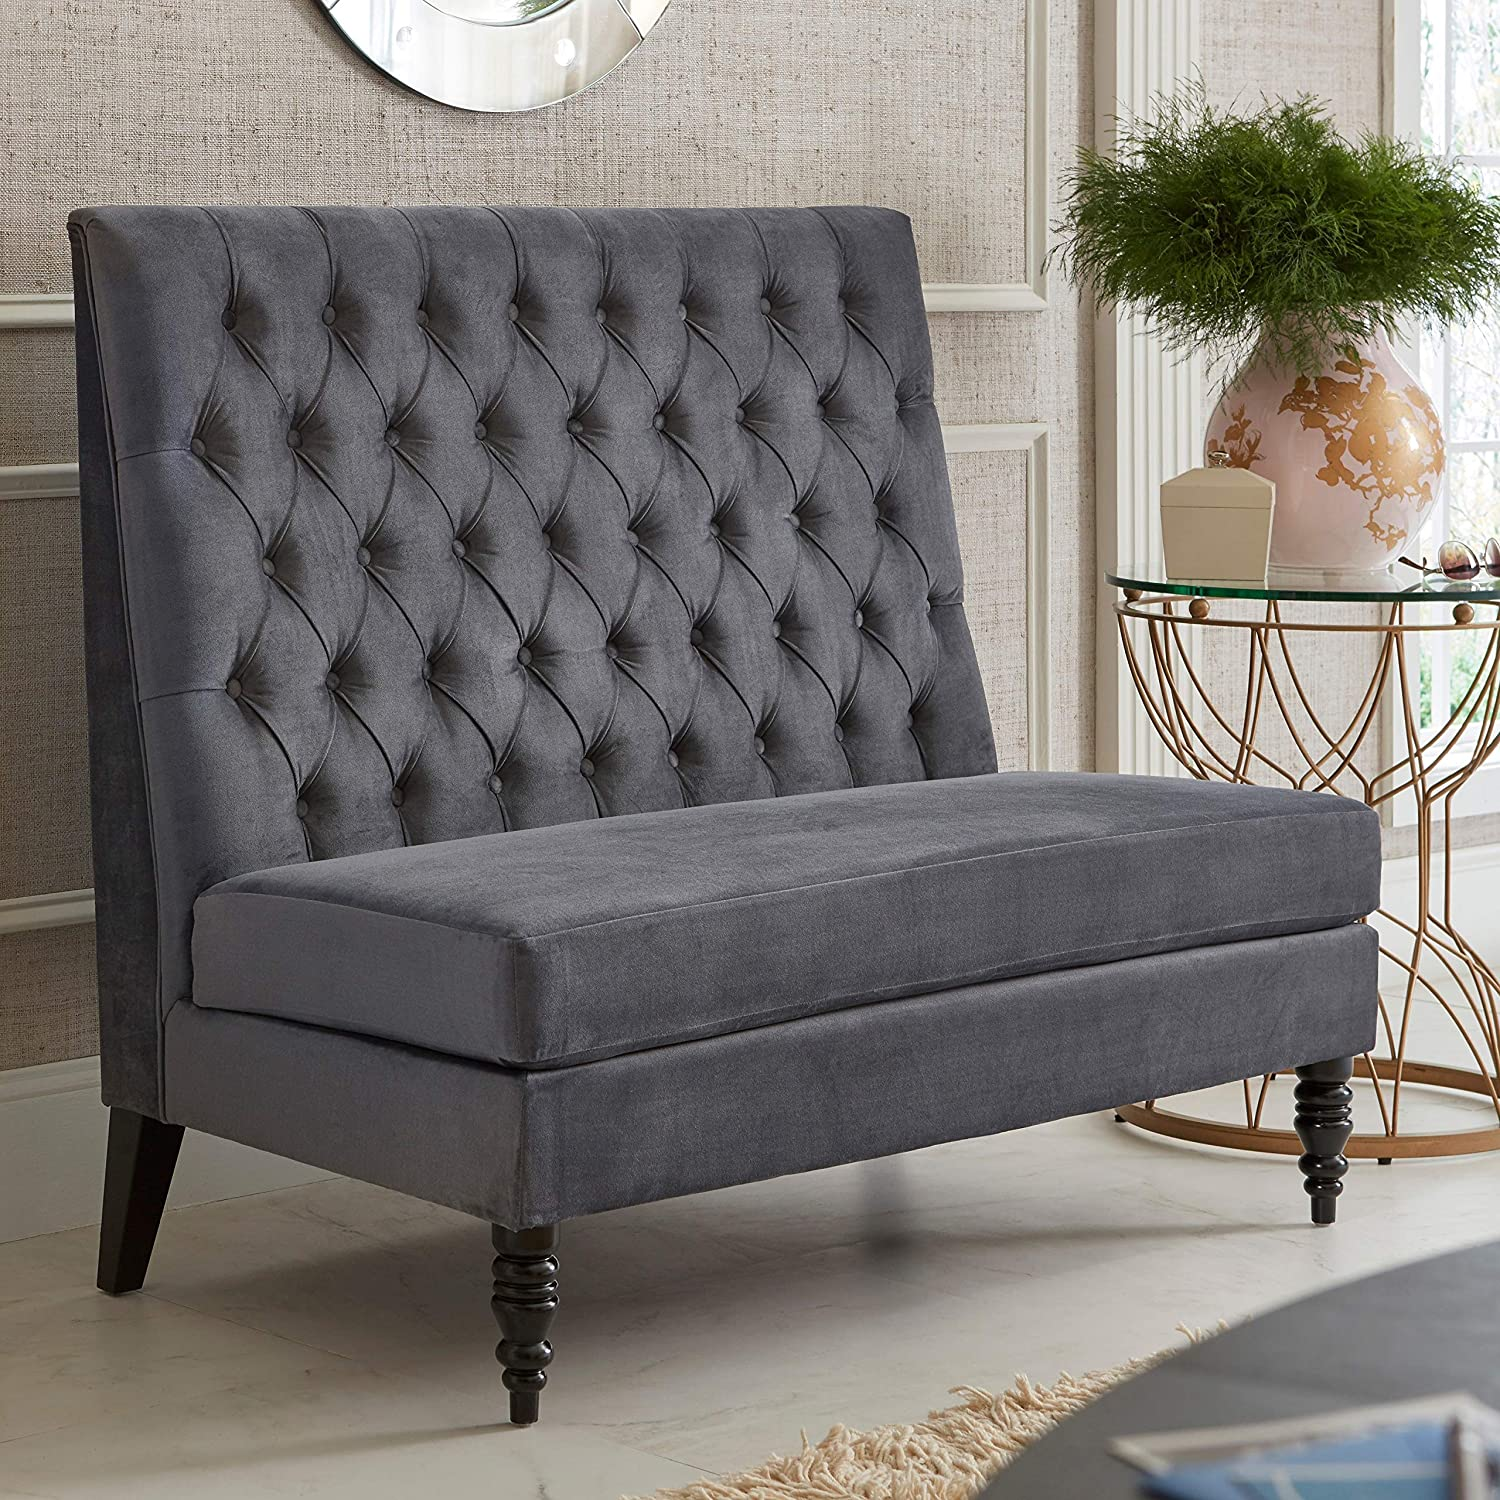 banquette new balance,runnings banquette new balance,soldes ...